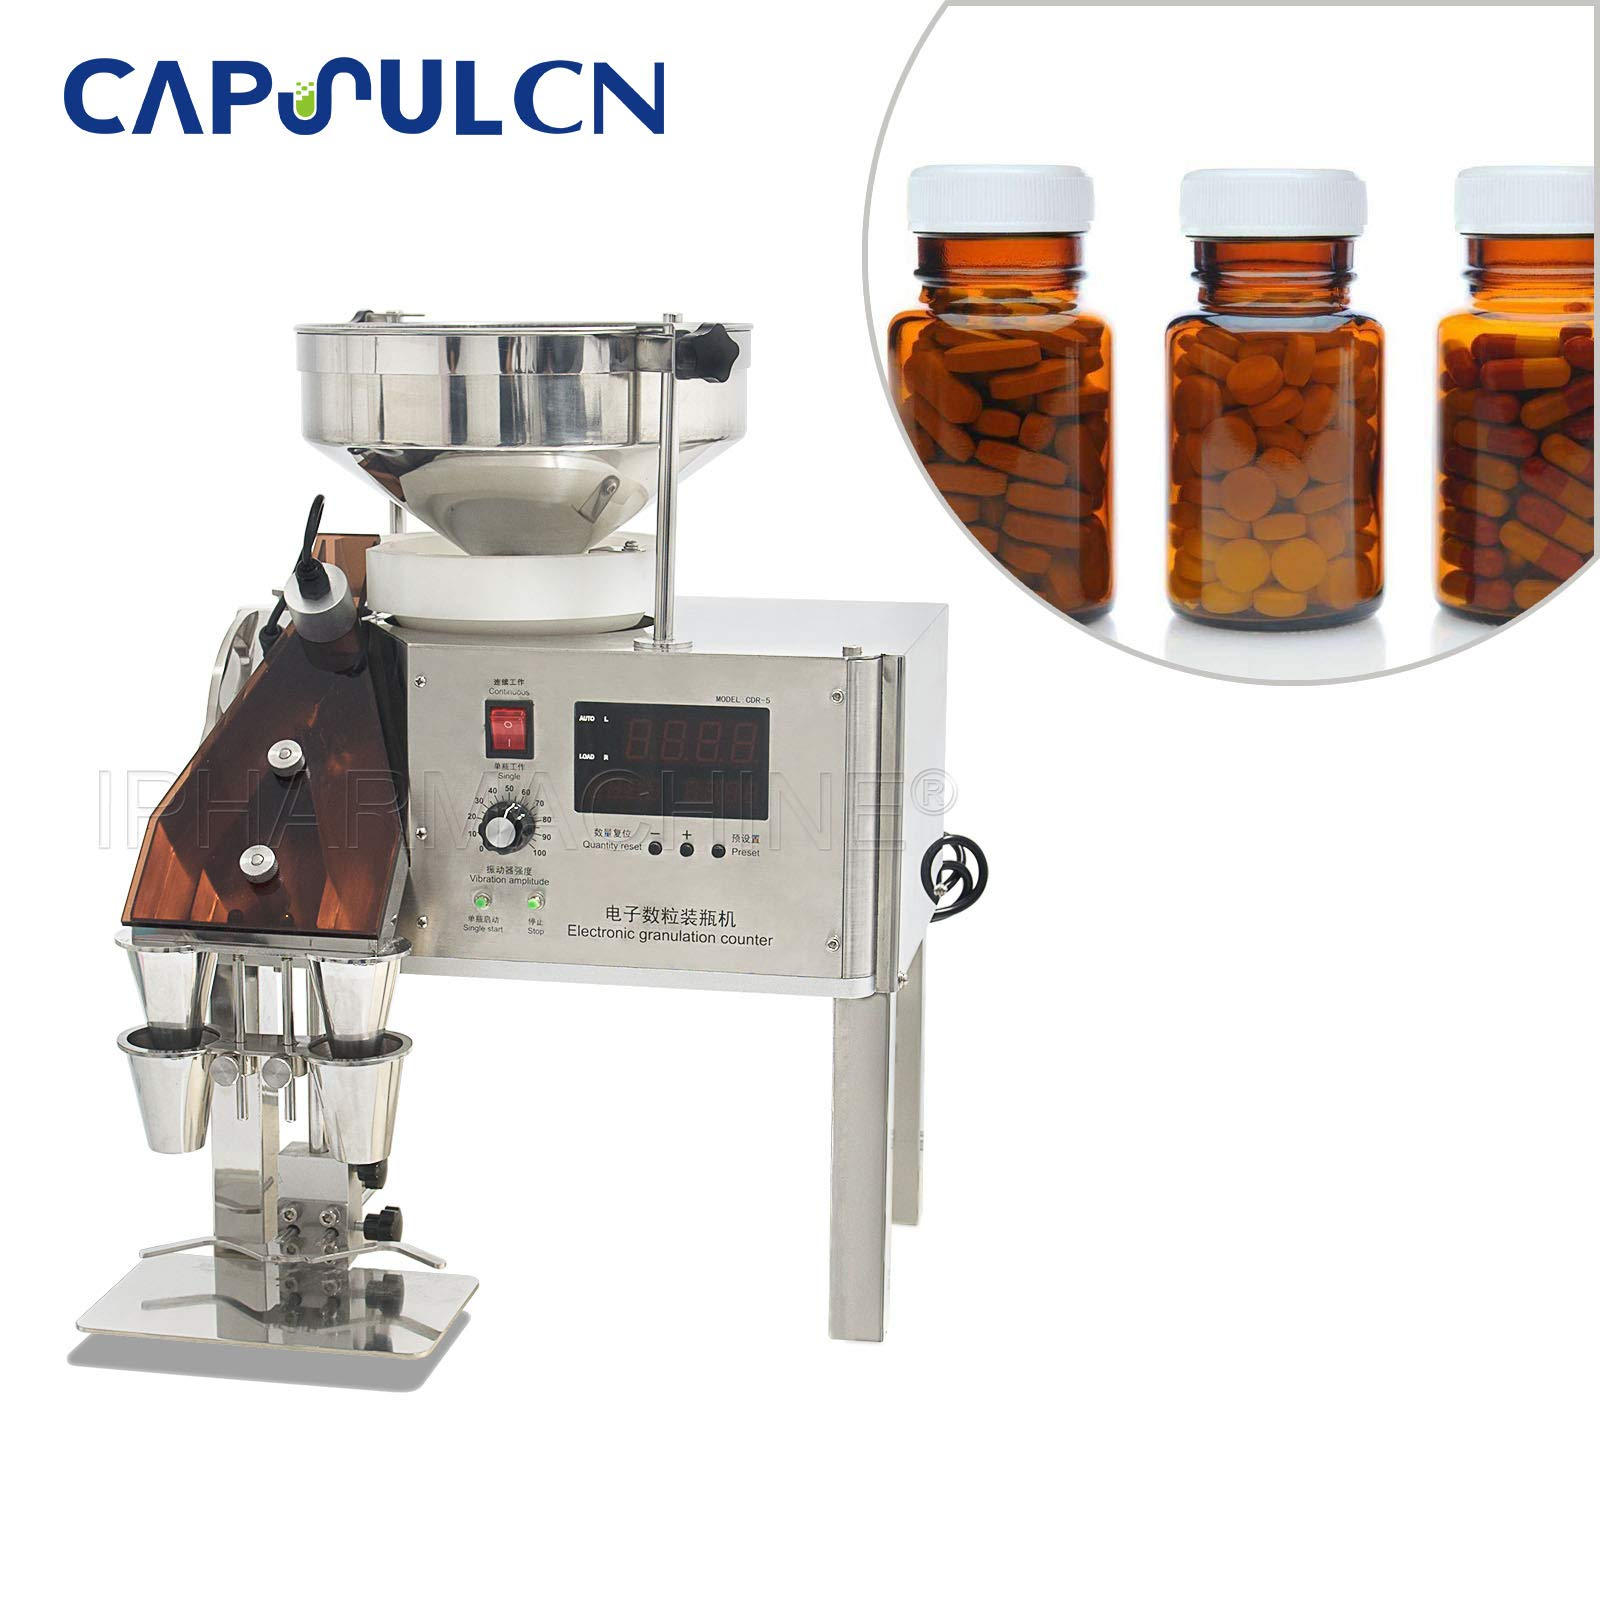 220V/50HZ CDR-5A Auto Capsules Counting Machine for Capsules/Tablets